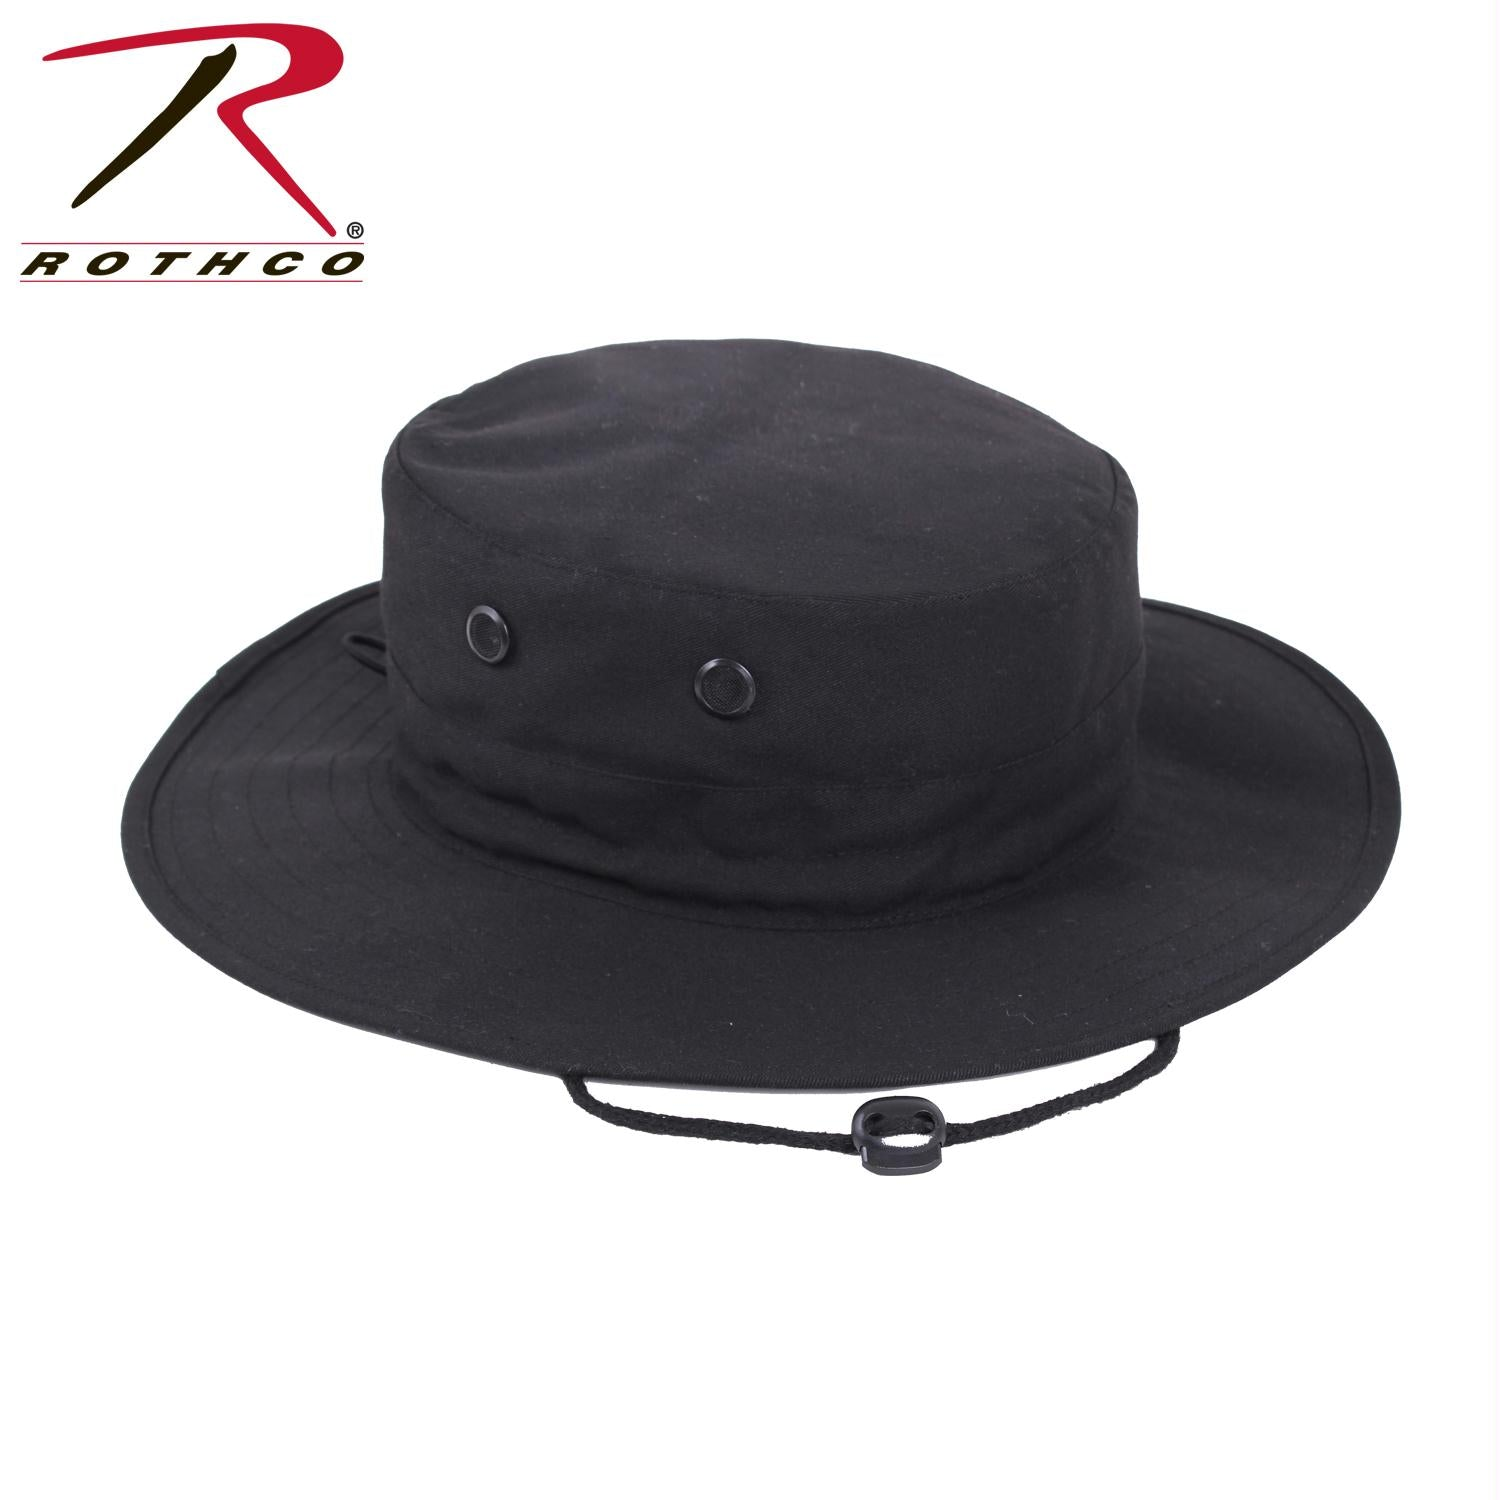 Rothco Adjustable Boonie Hat - Black / One Size